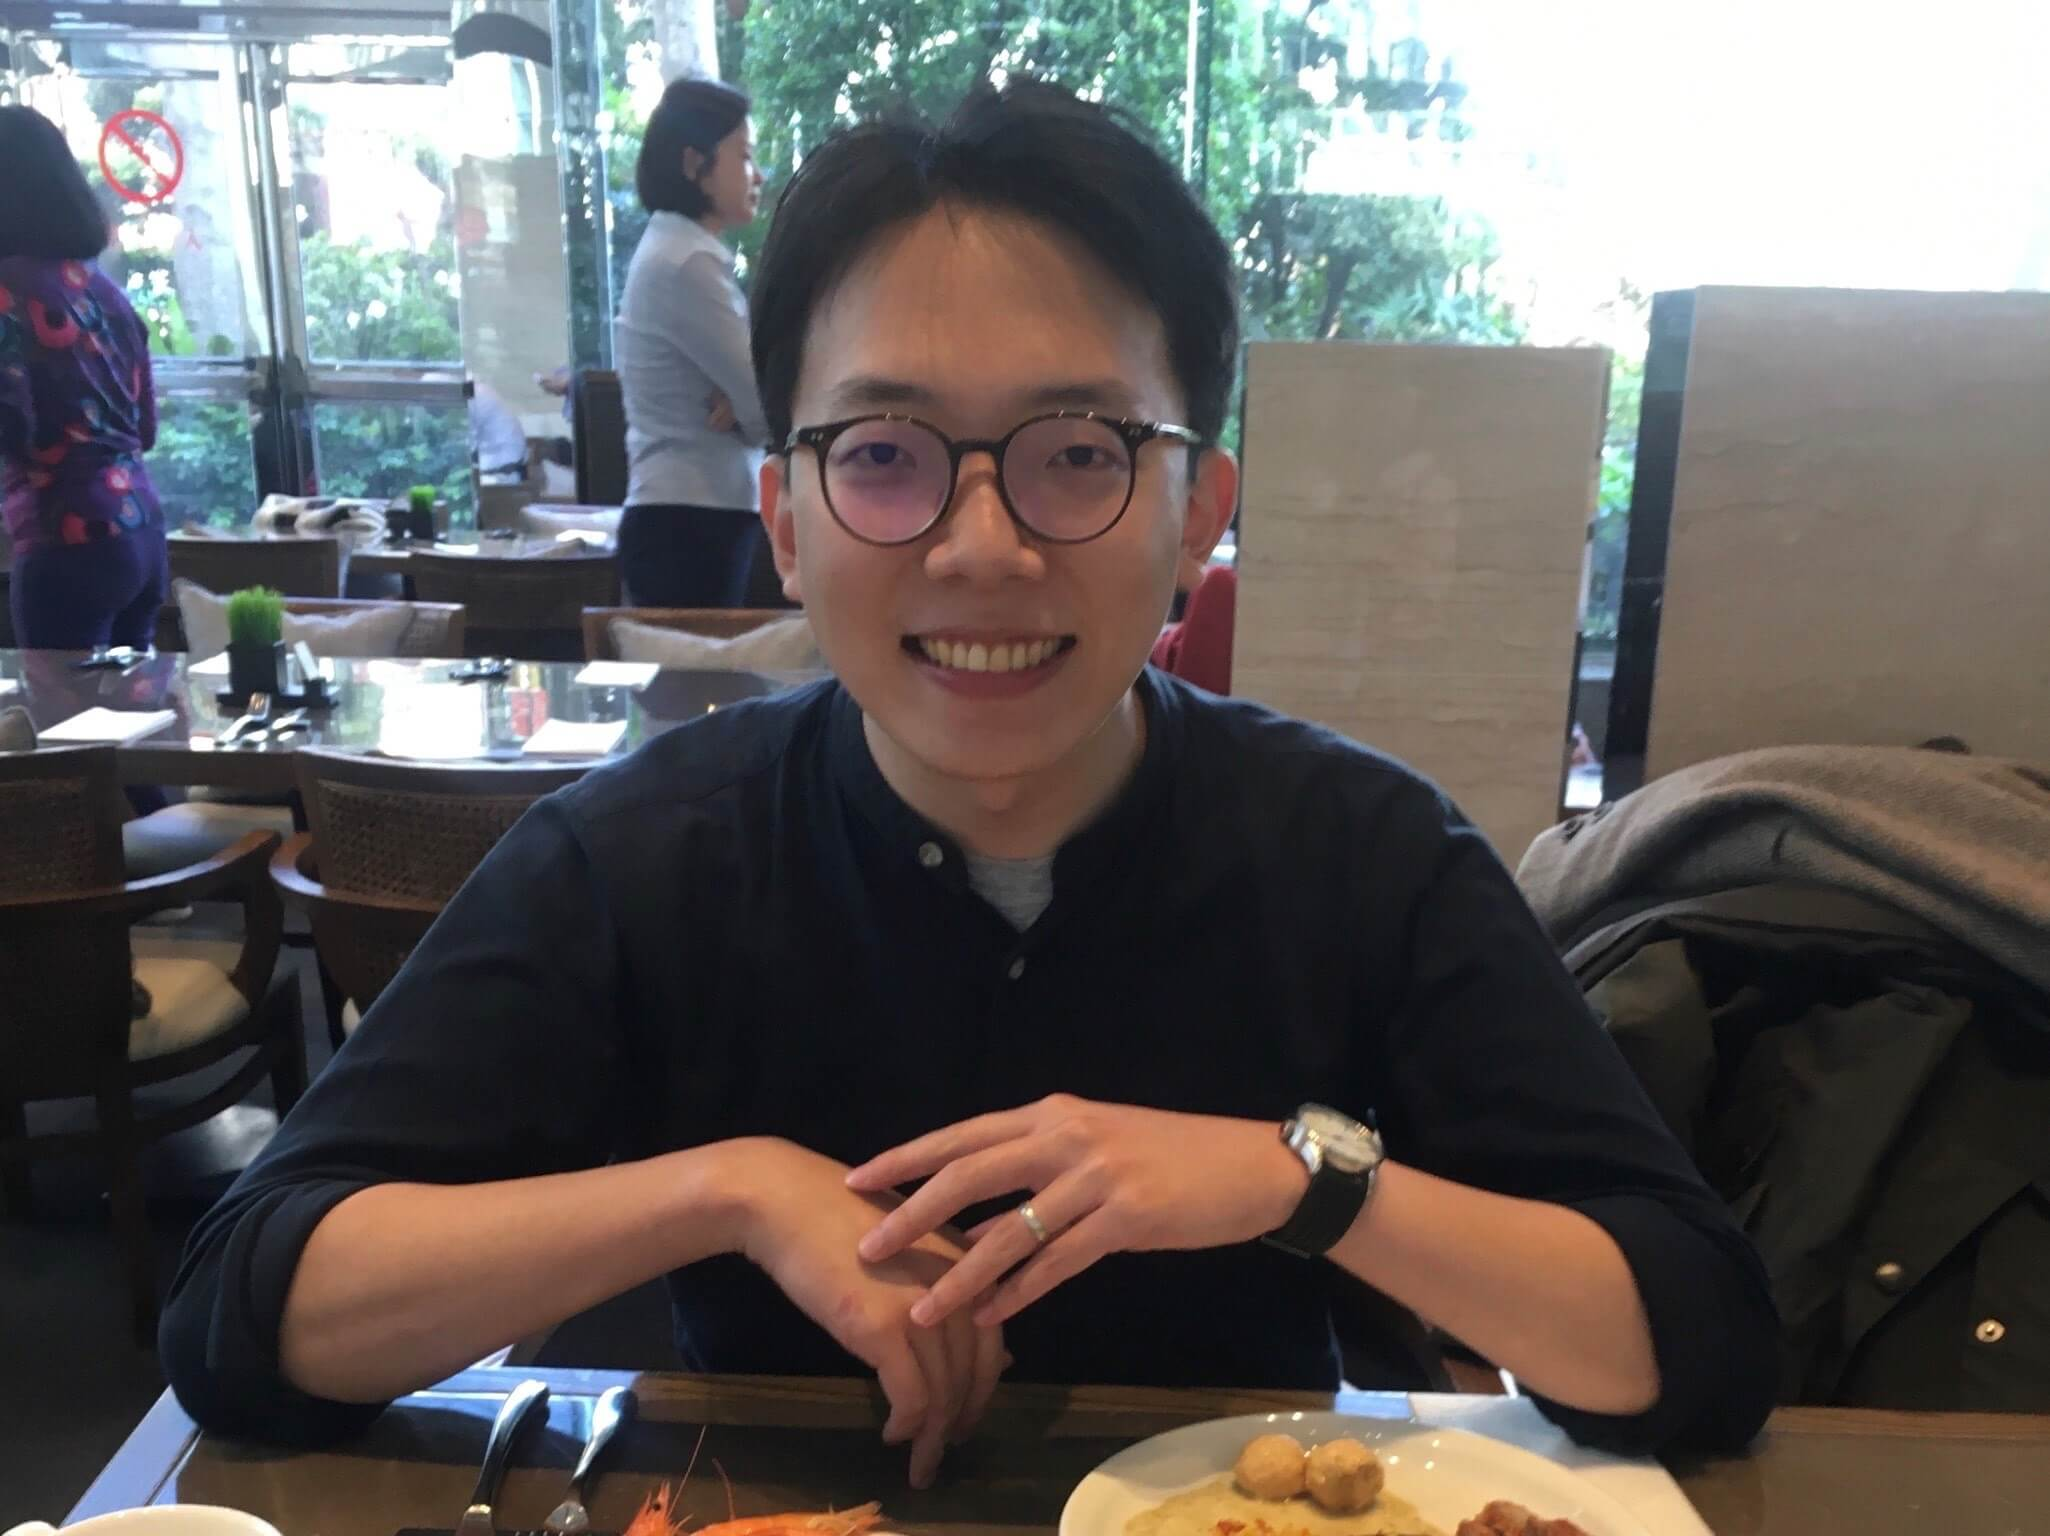 Chang Kai-Hsiang, master's in accounting and finance student at SMU, sitting in a restaurant